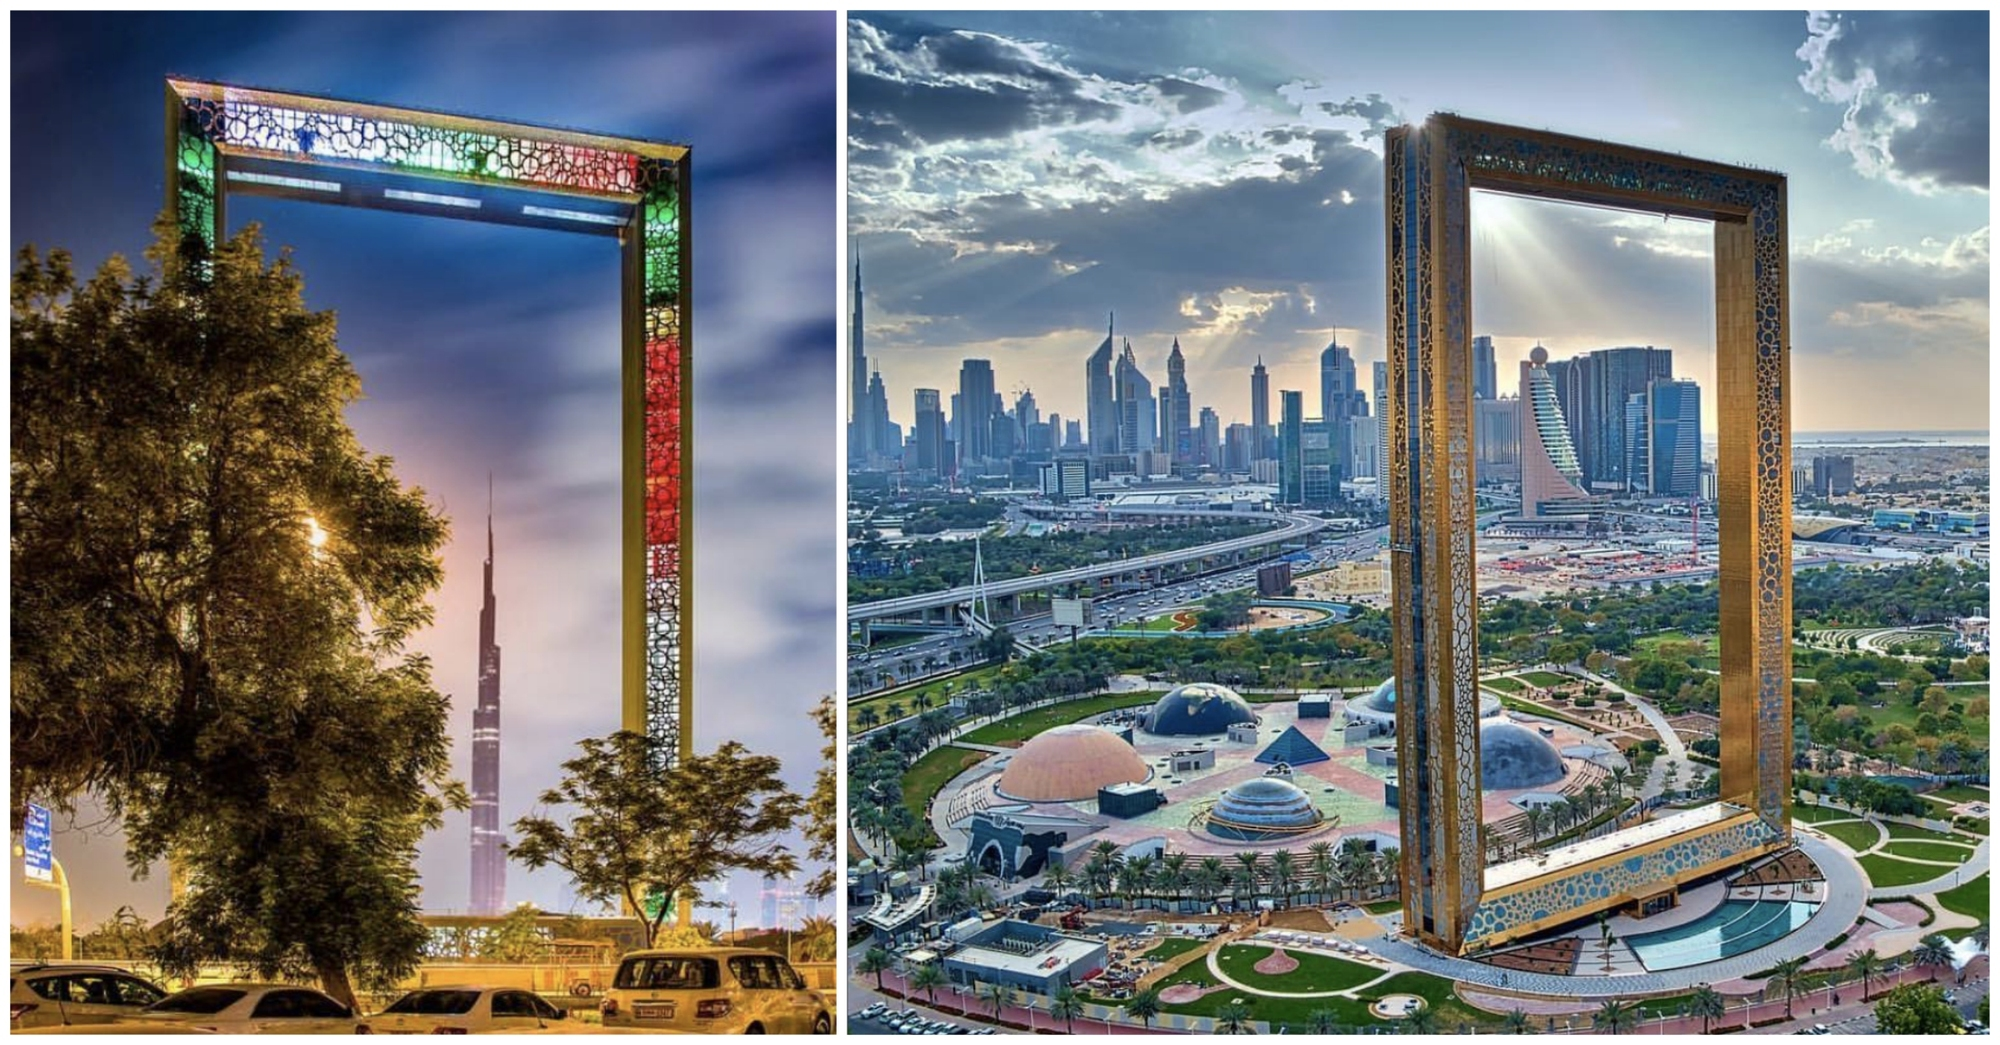 Worlds largest picture frame opens in dubai archdaily worlds largest picture frame opens in dubai archdaily jeuxipadfo Choice Image